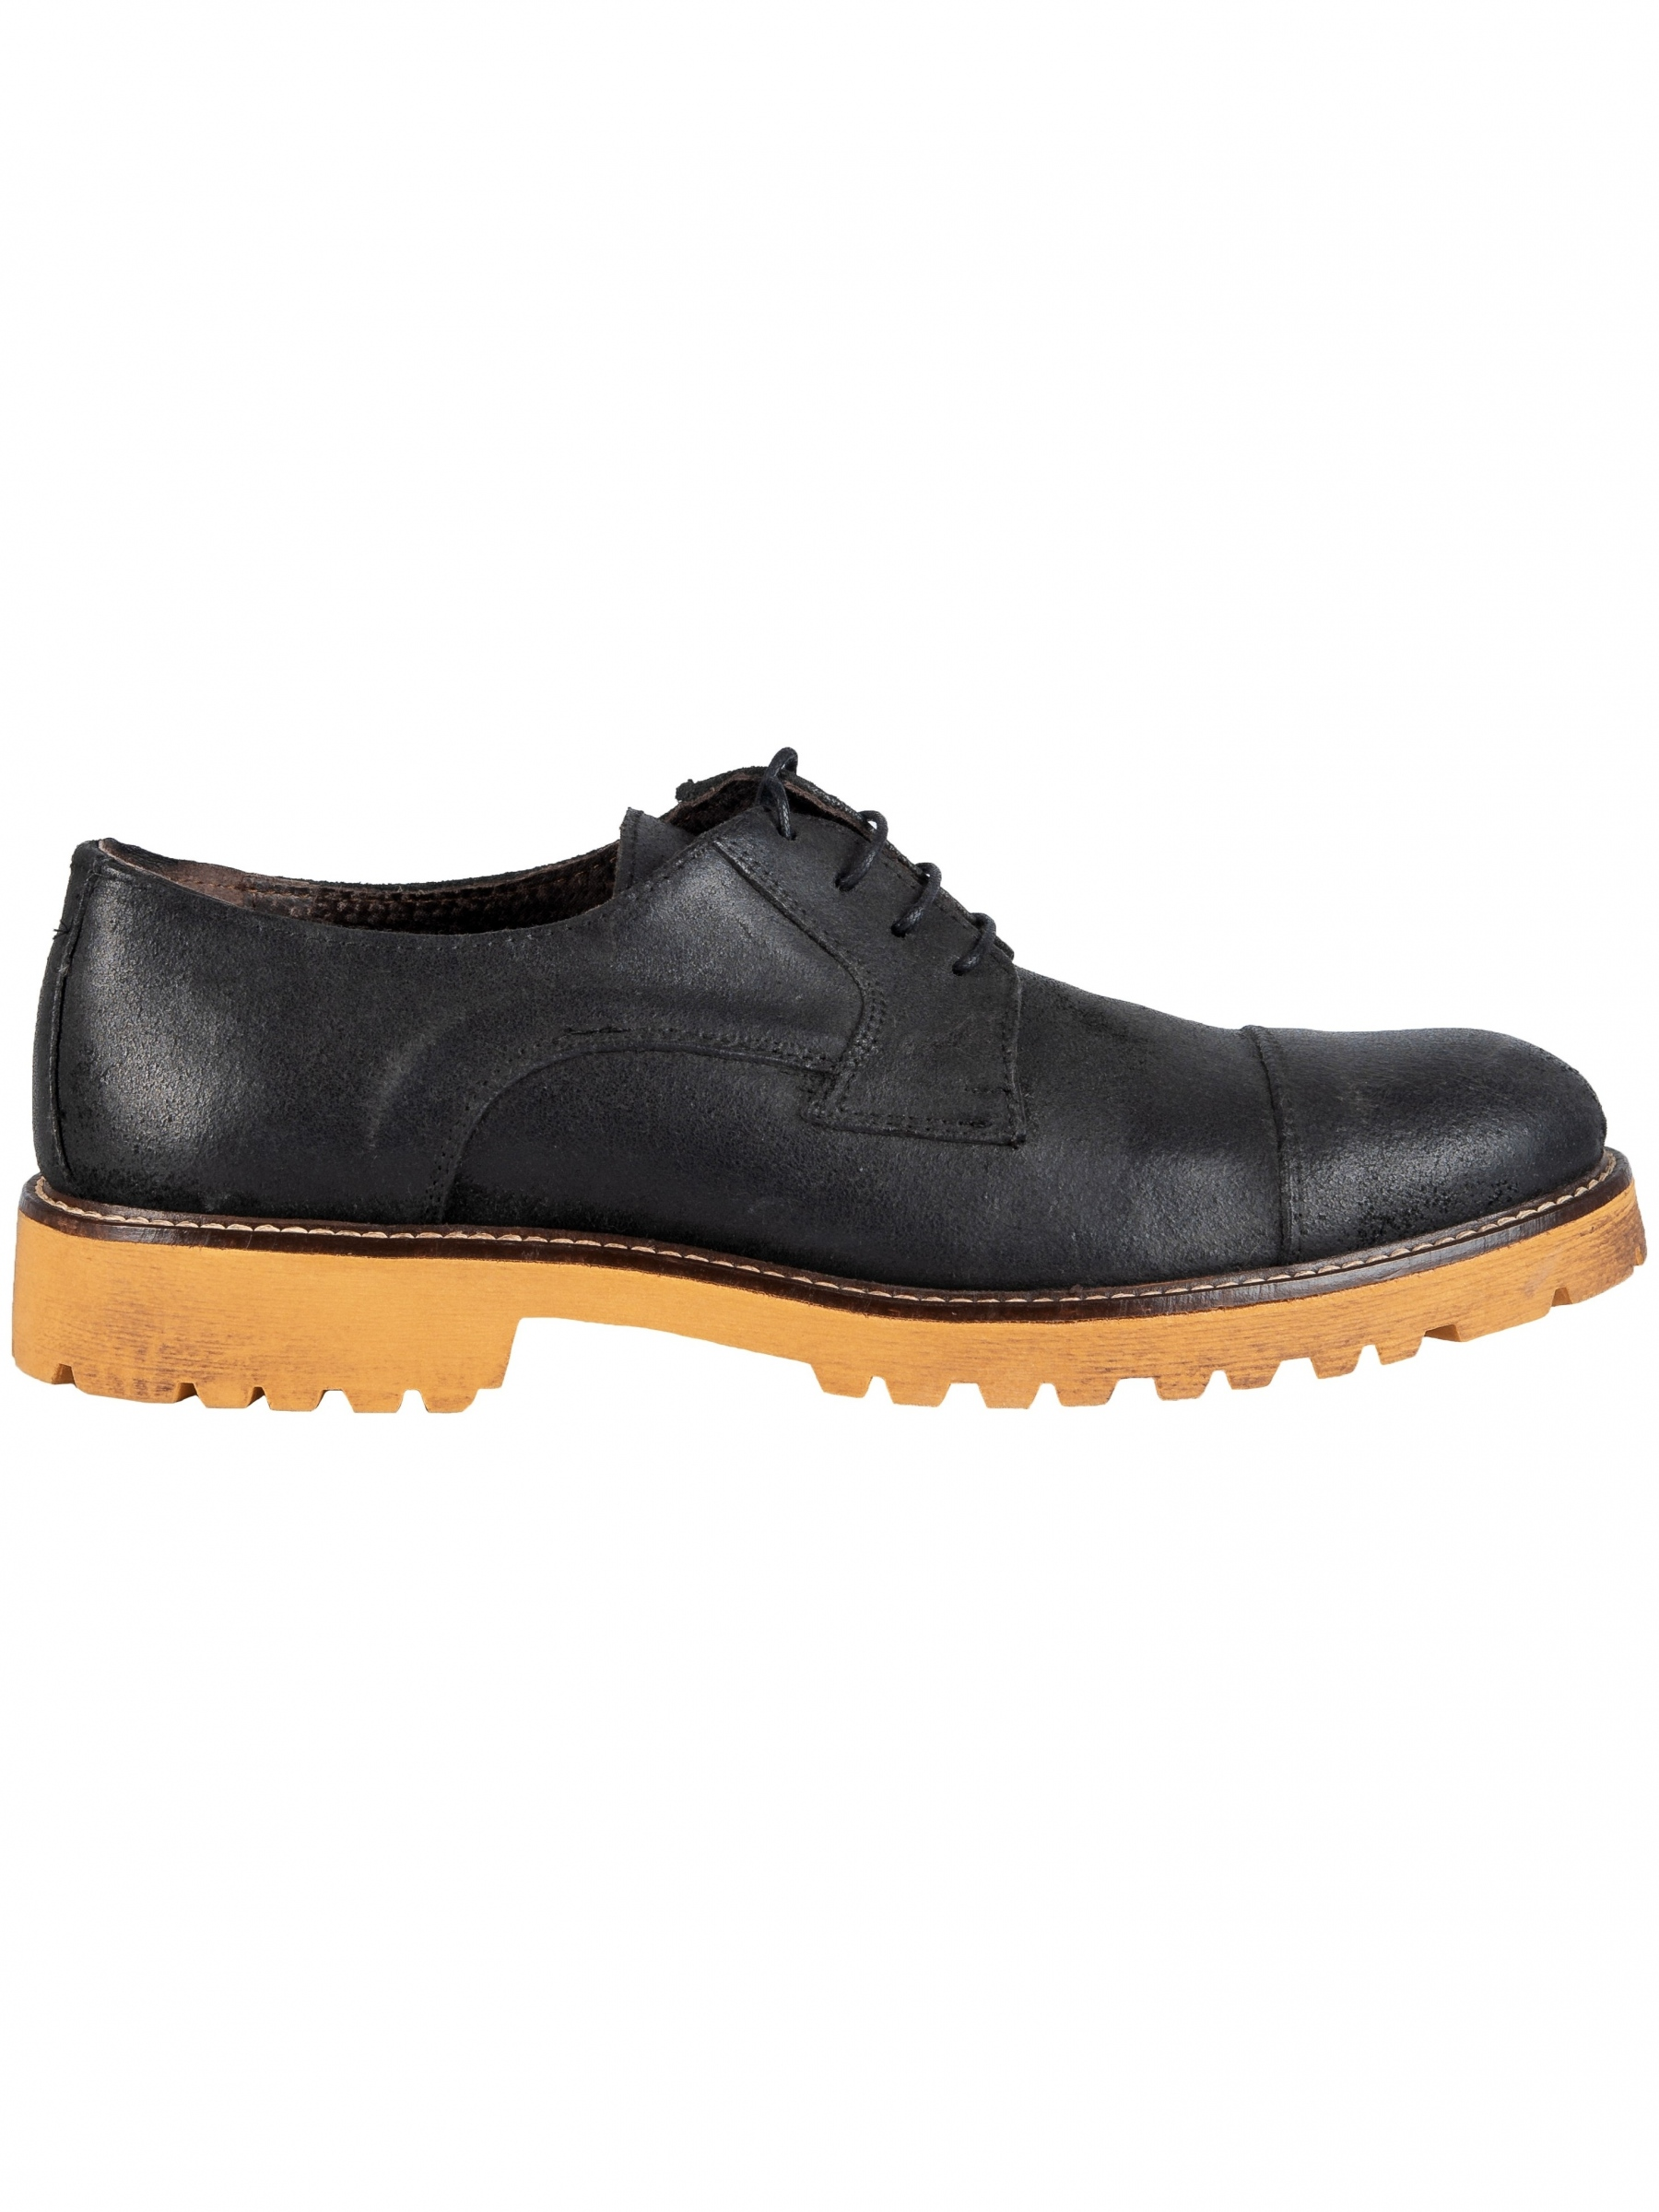 RIVIERA MILANO leather shoes GN01-ISC-OLEATA-2160 black-brown